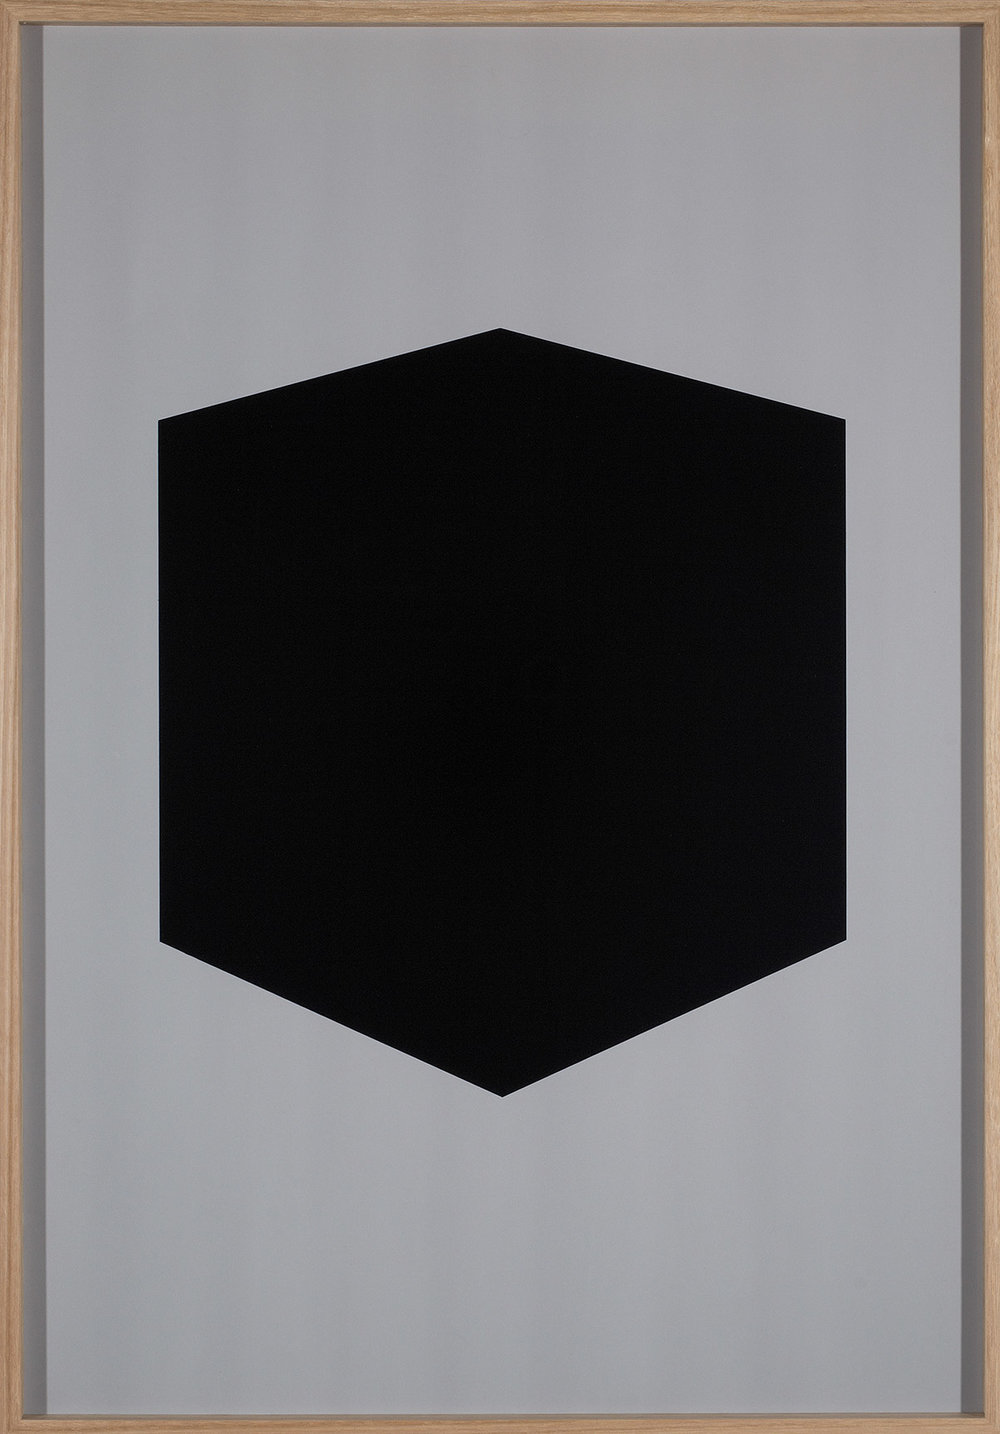 Brad Haylock,  After Zero (grey) , 2011, silkscreen print on paper, 100 x 70cm